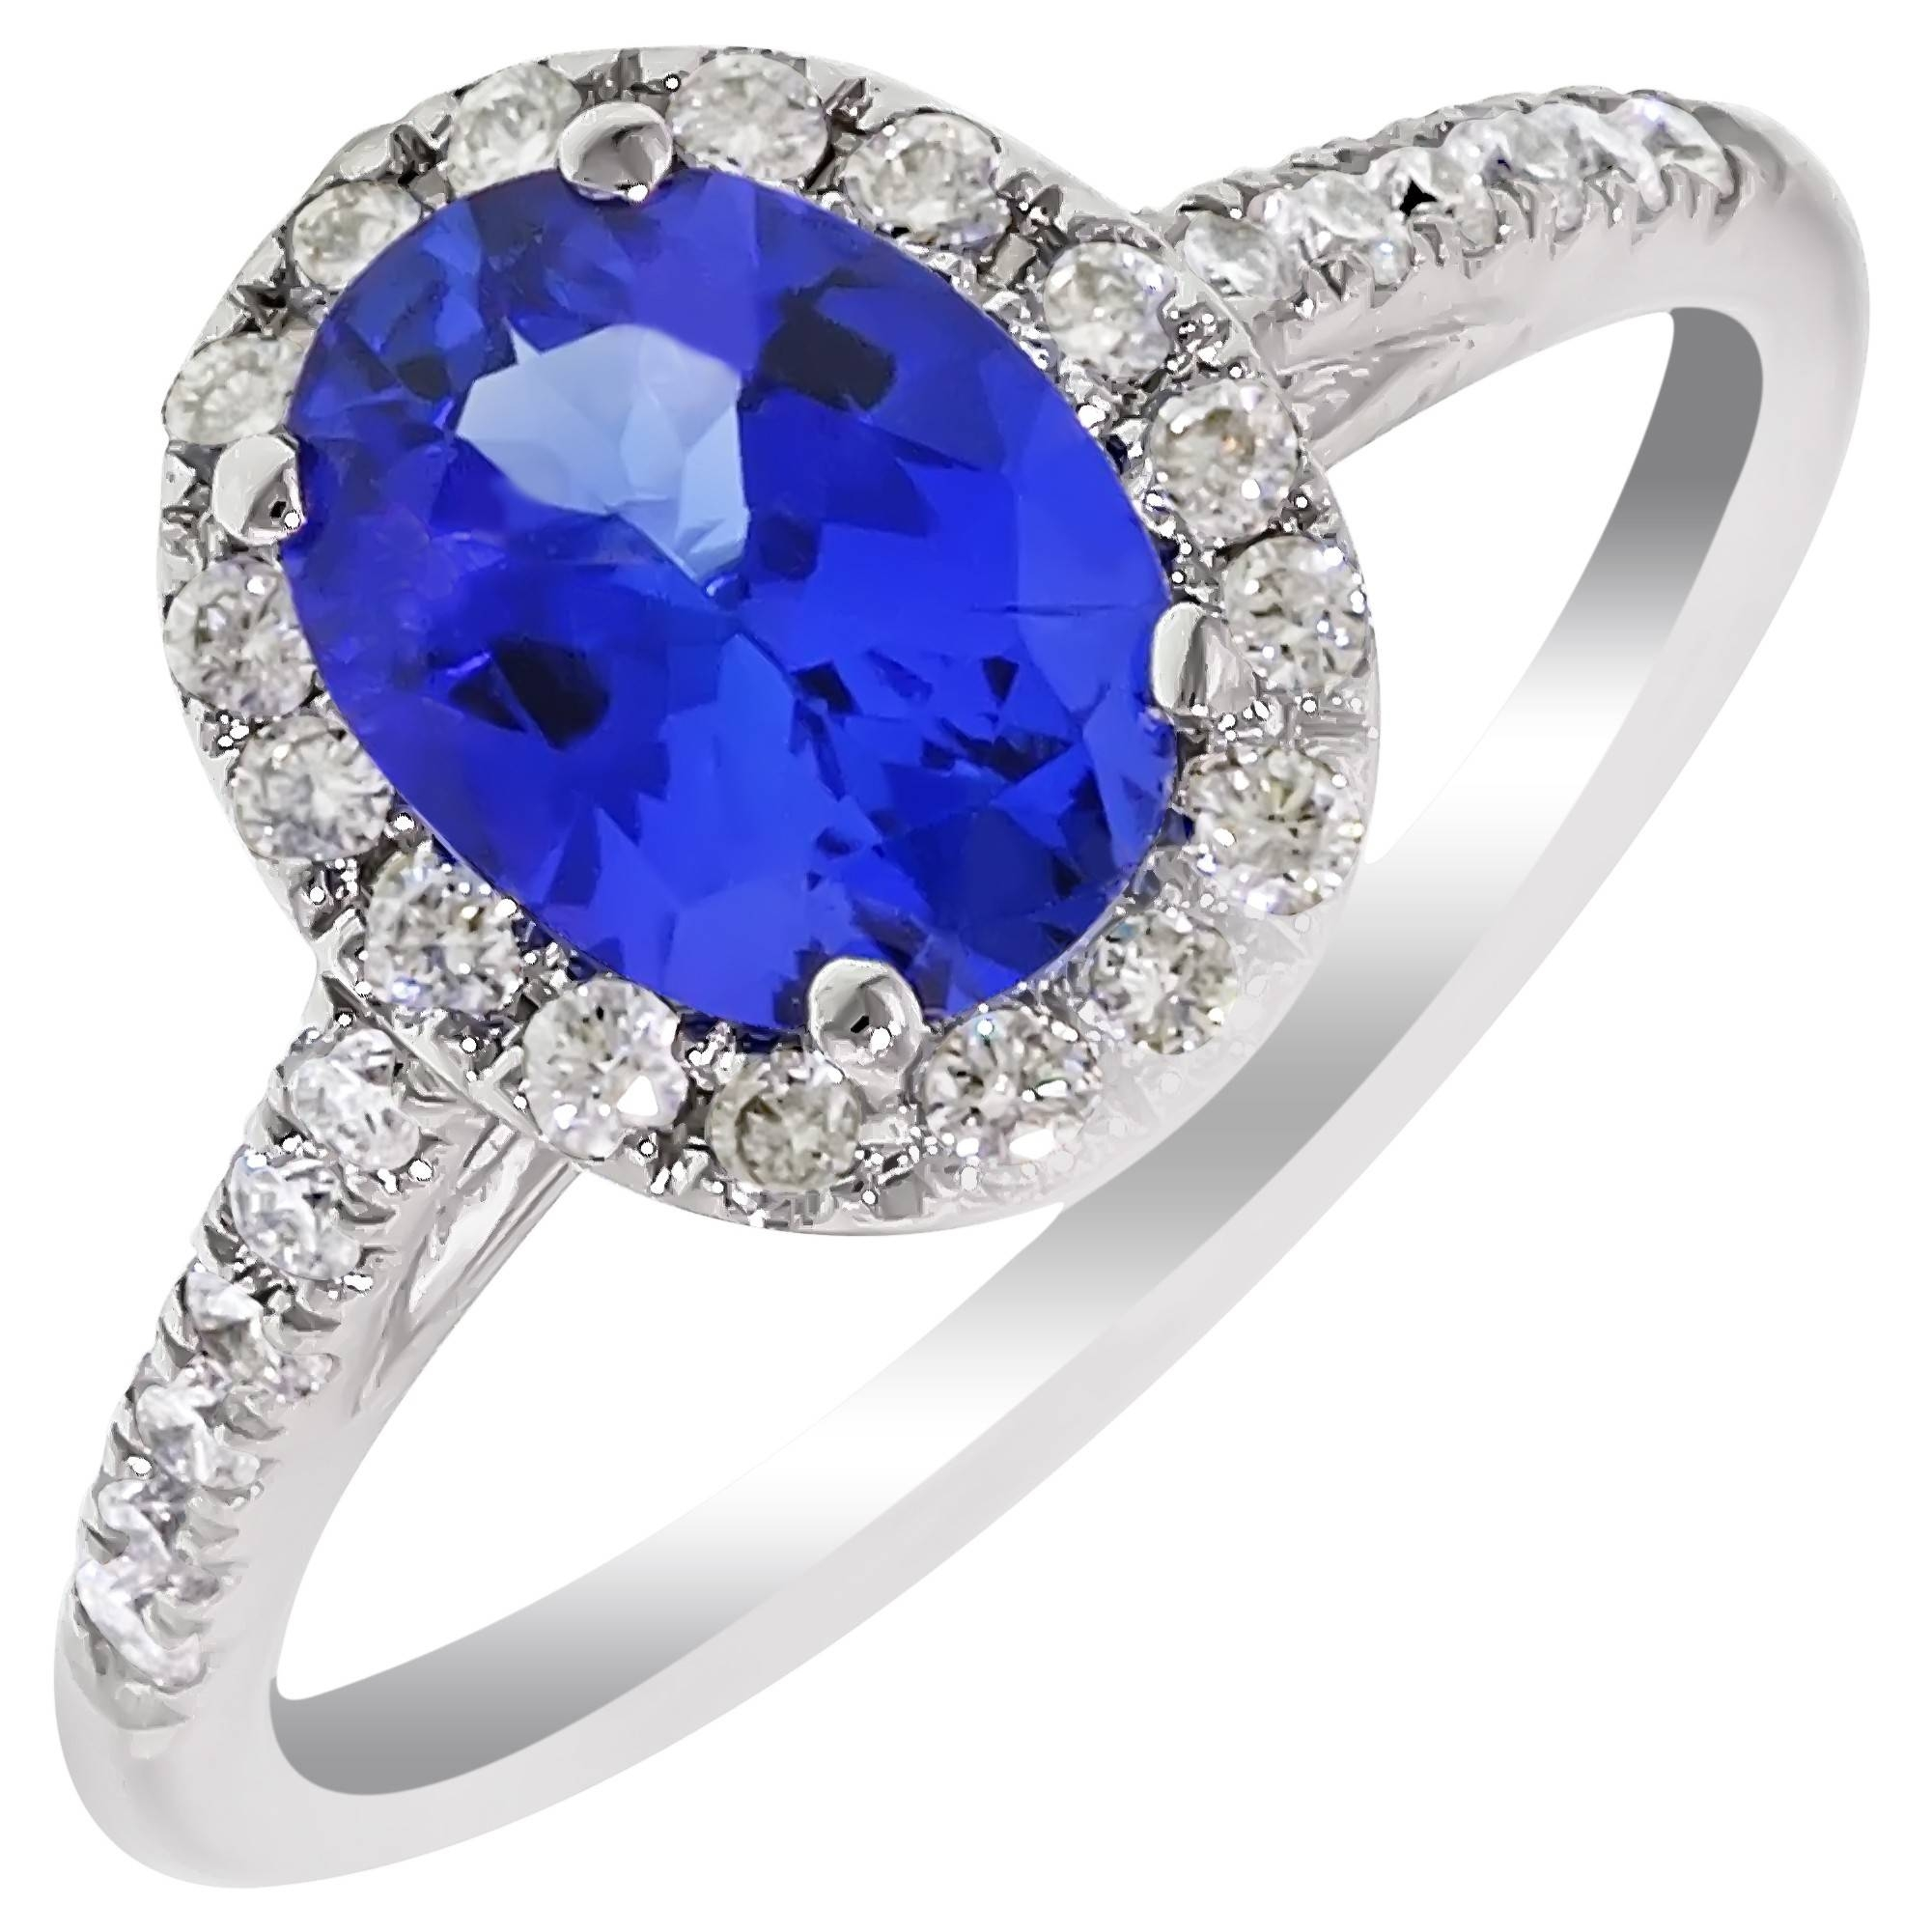 Oval Tanzanite Ring With Diamonds In 14kt White Gold (1/3ct Tw) Within Tanzanite White Gold Engagement Rings (View 8 of 15)